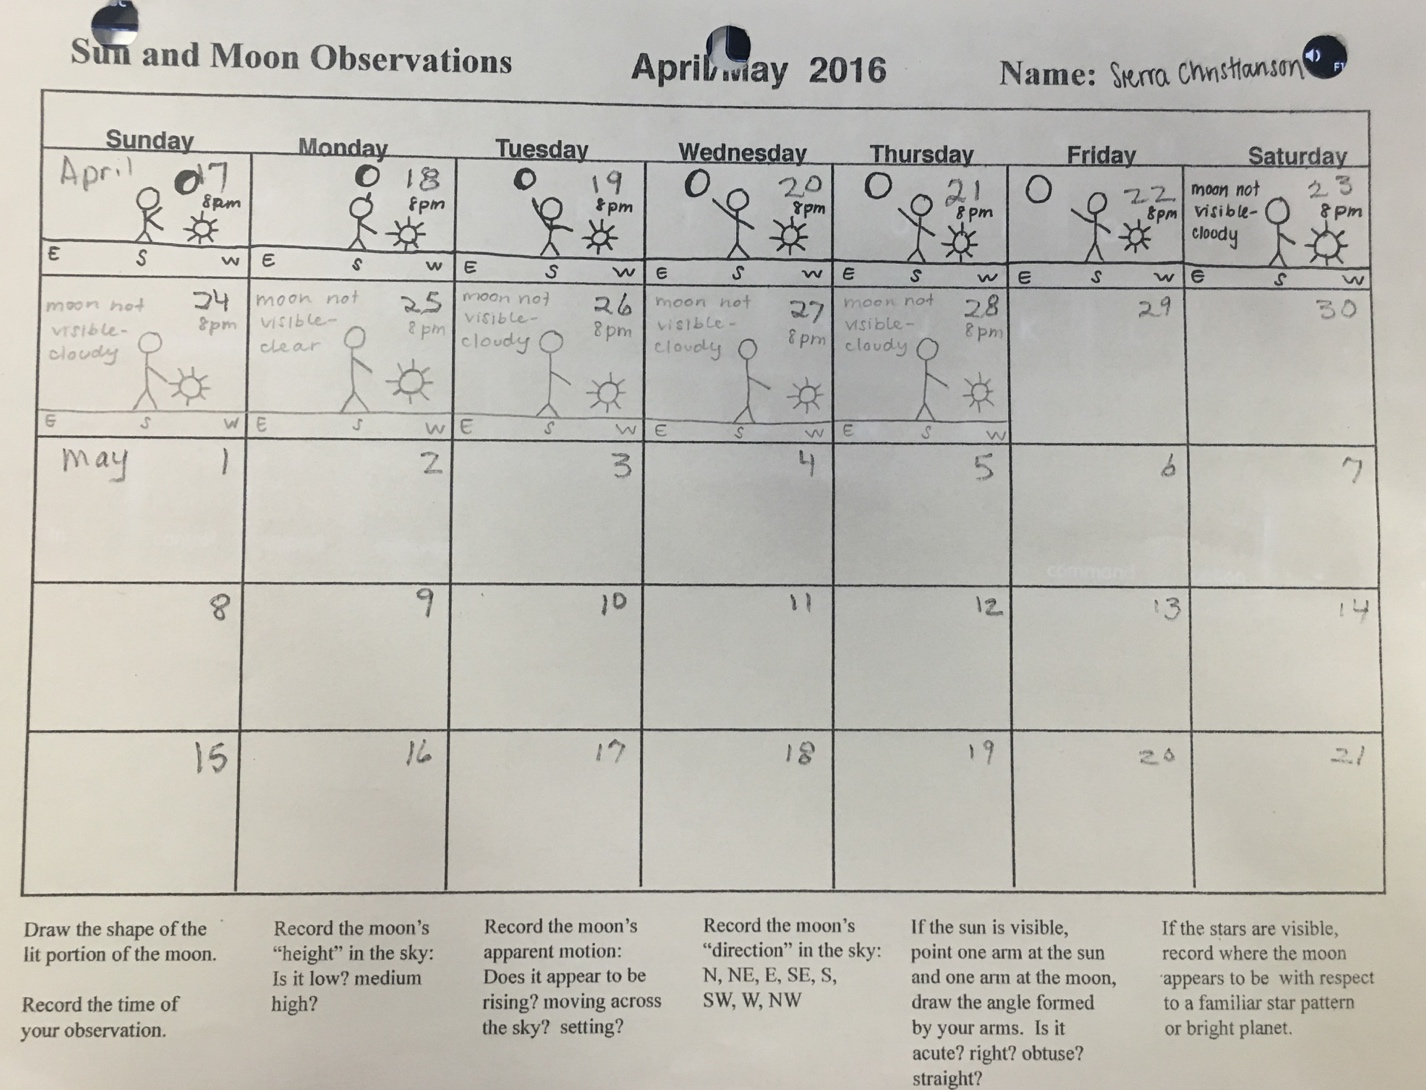 Student's observations of the Moon, April 17-28, 2016.